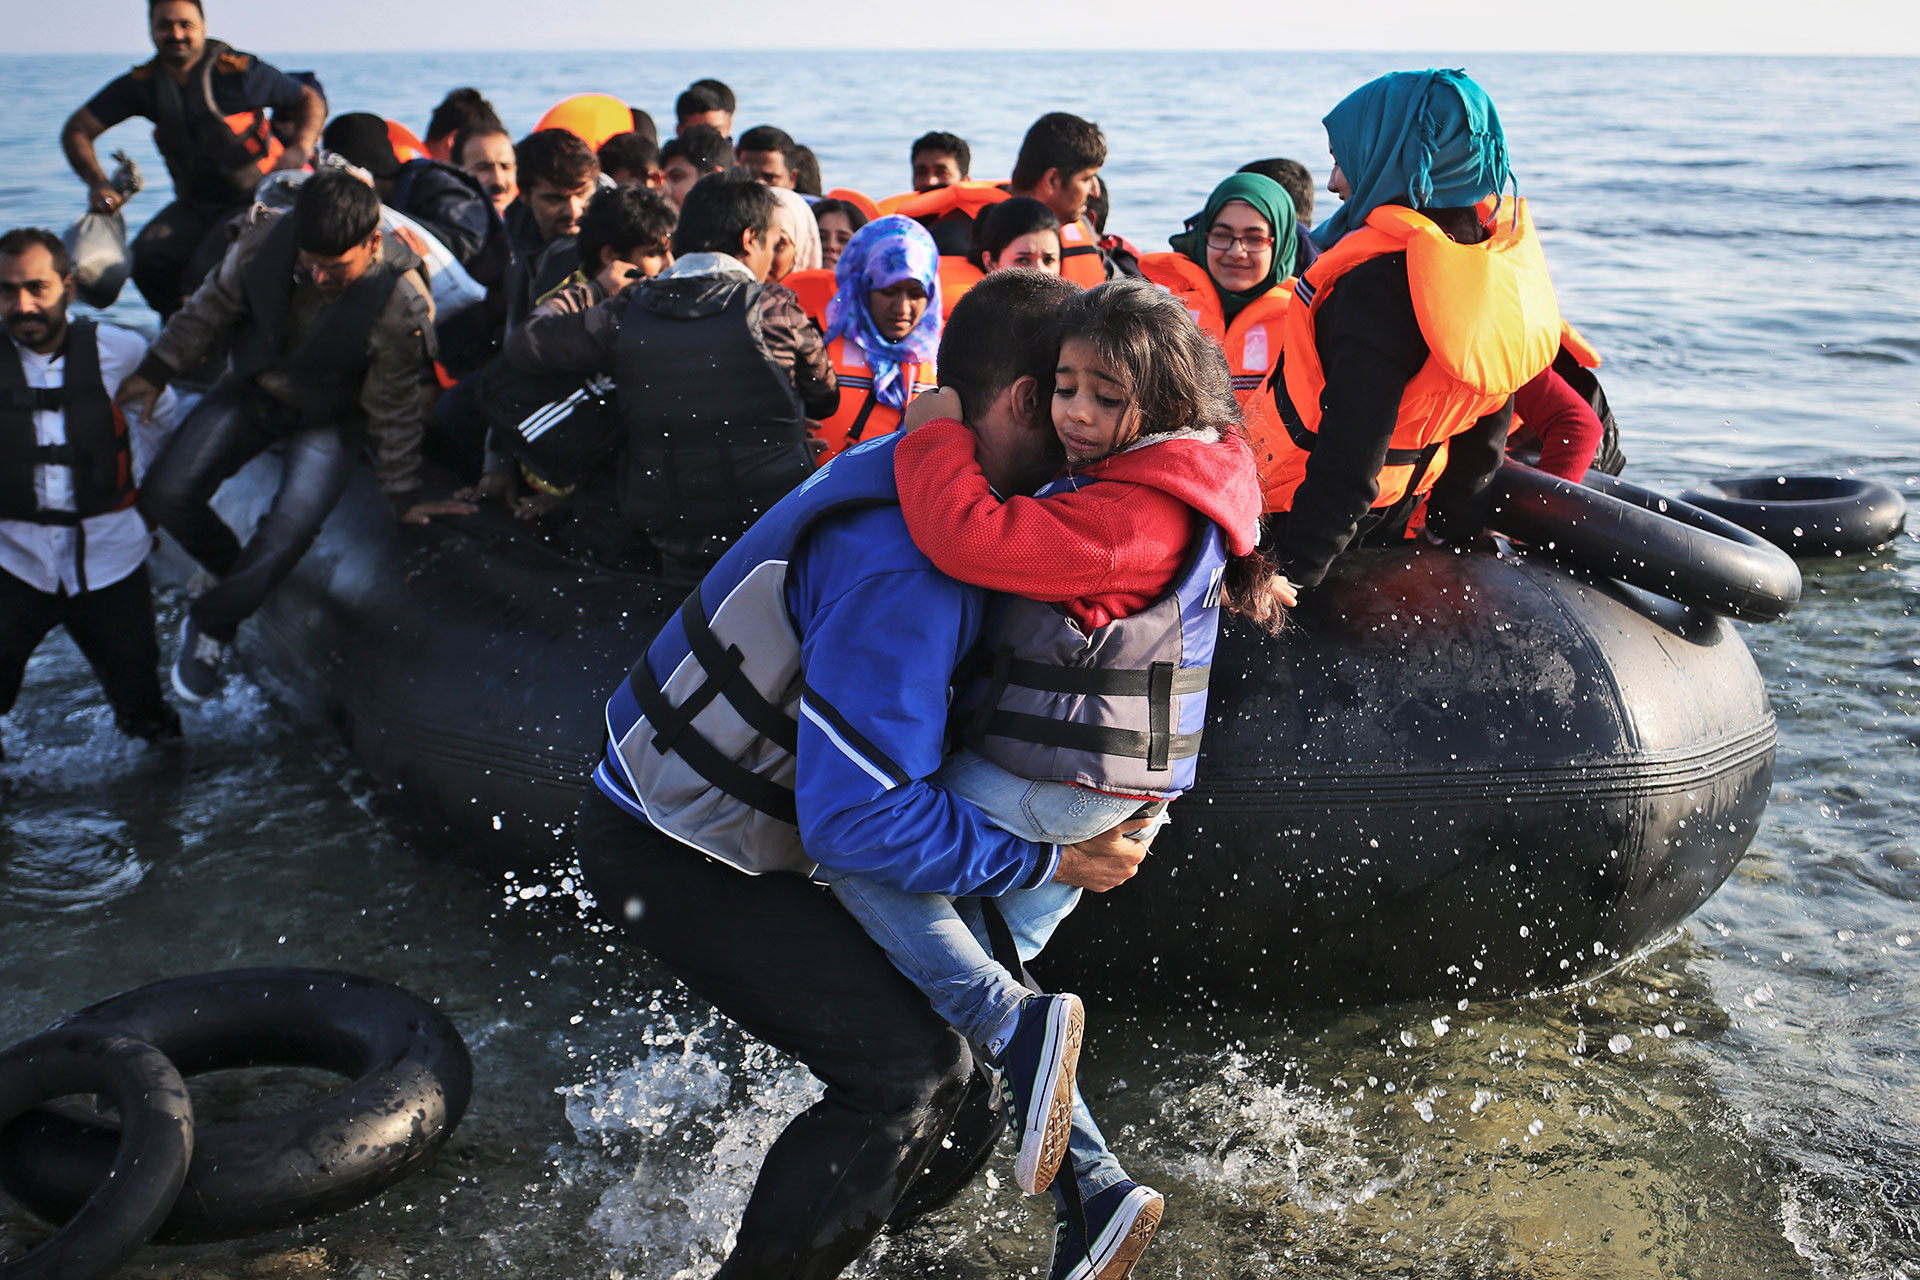 Syrian refugees come in on a boat from Turkey, in Mytilene, on the island of Lesbos, Greece on Friday, October 9th, 2015. Once refugees get processed and get papers after their arrival in Lesbos, they can exchange money and buy ferry tickets to get to Athens.(Photo credit/Tara Todras-Whitehill for IRC)